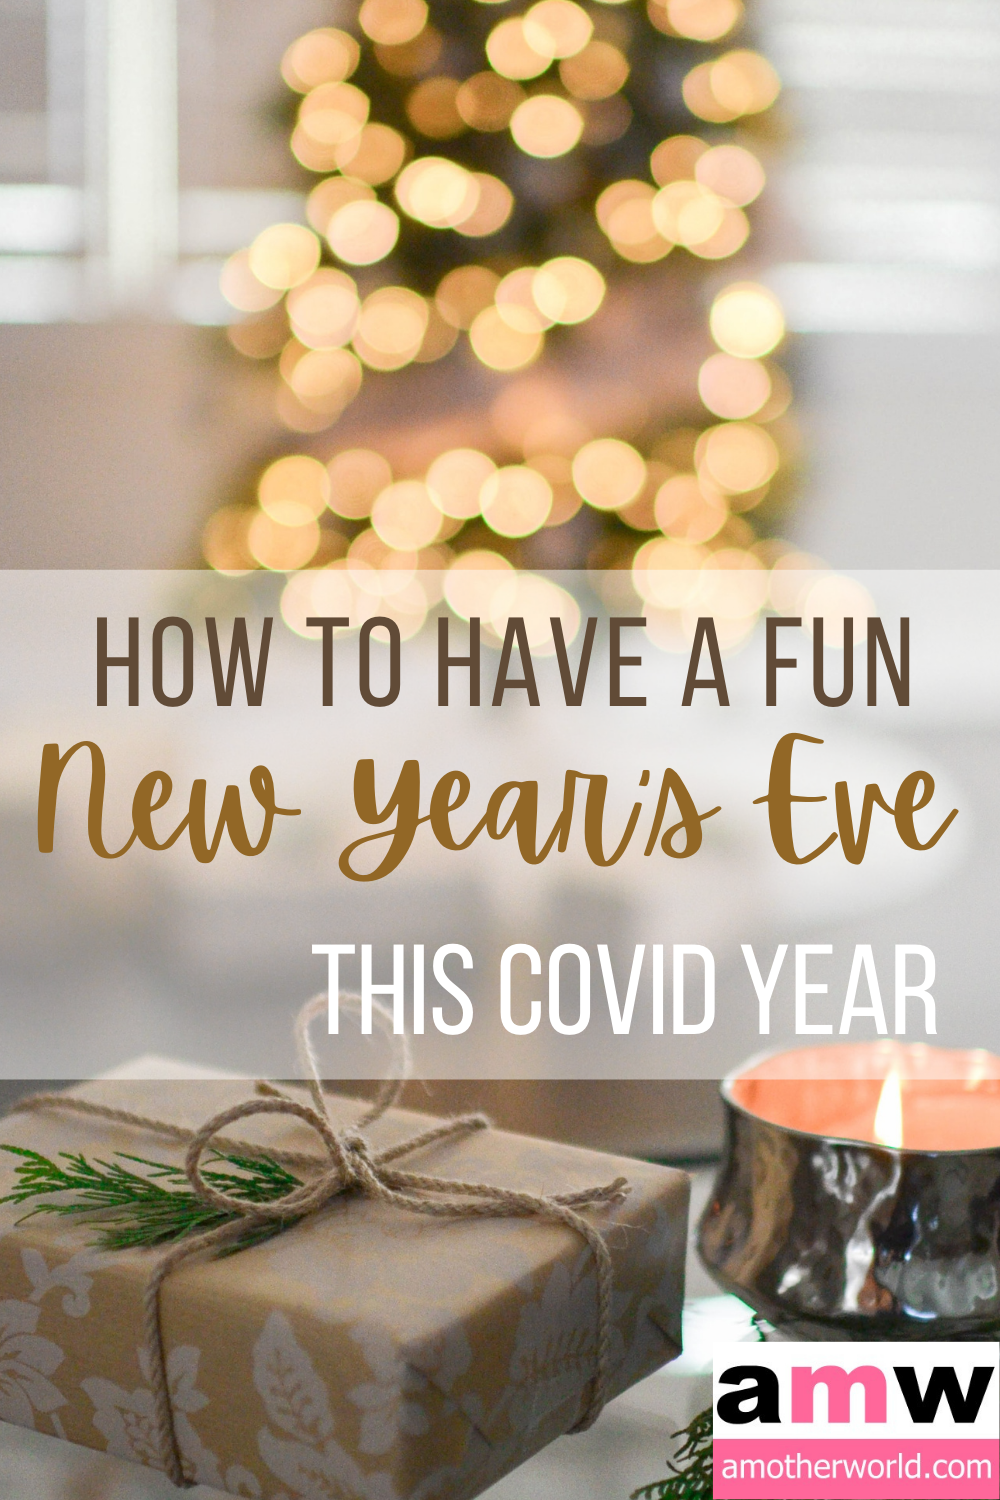 How to Have a Fun New Year's Eve This Covid Year